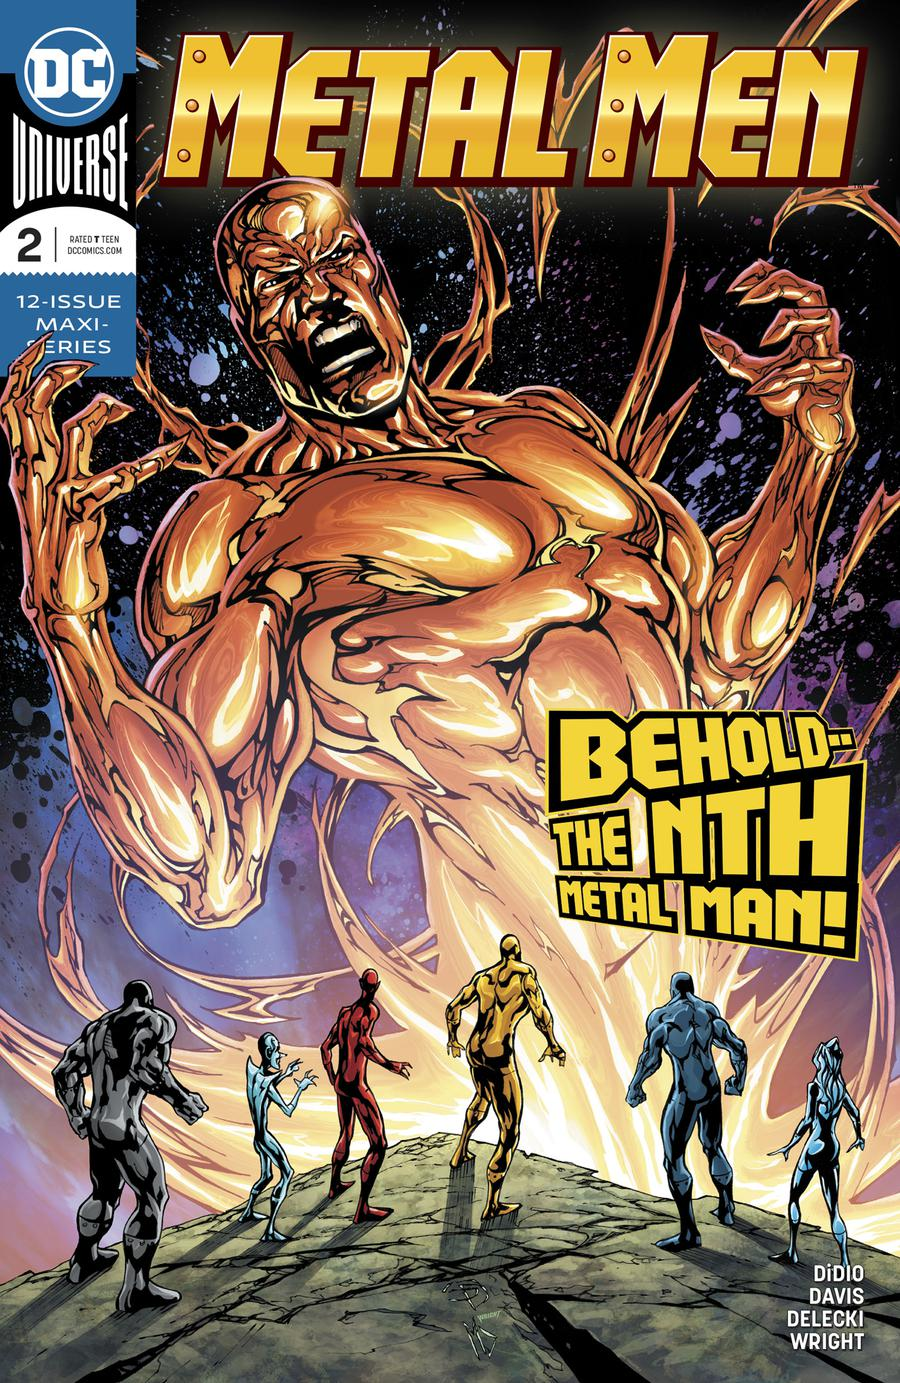 Metal Men Vol 4 #2 Cover A Regular Shane Davis Cover